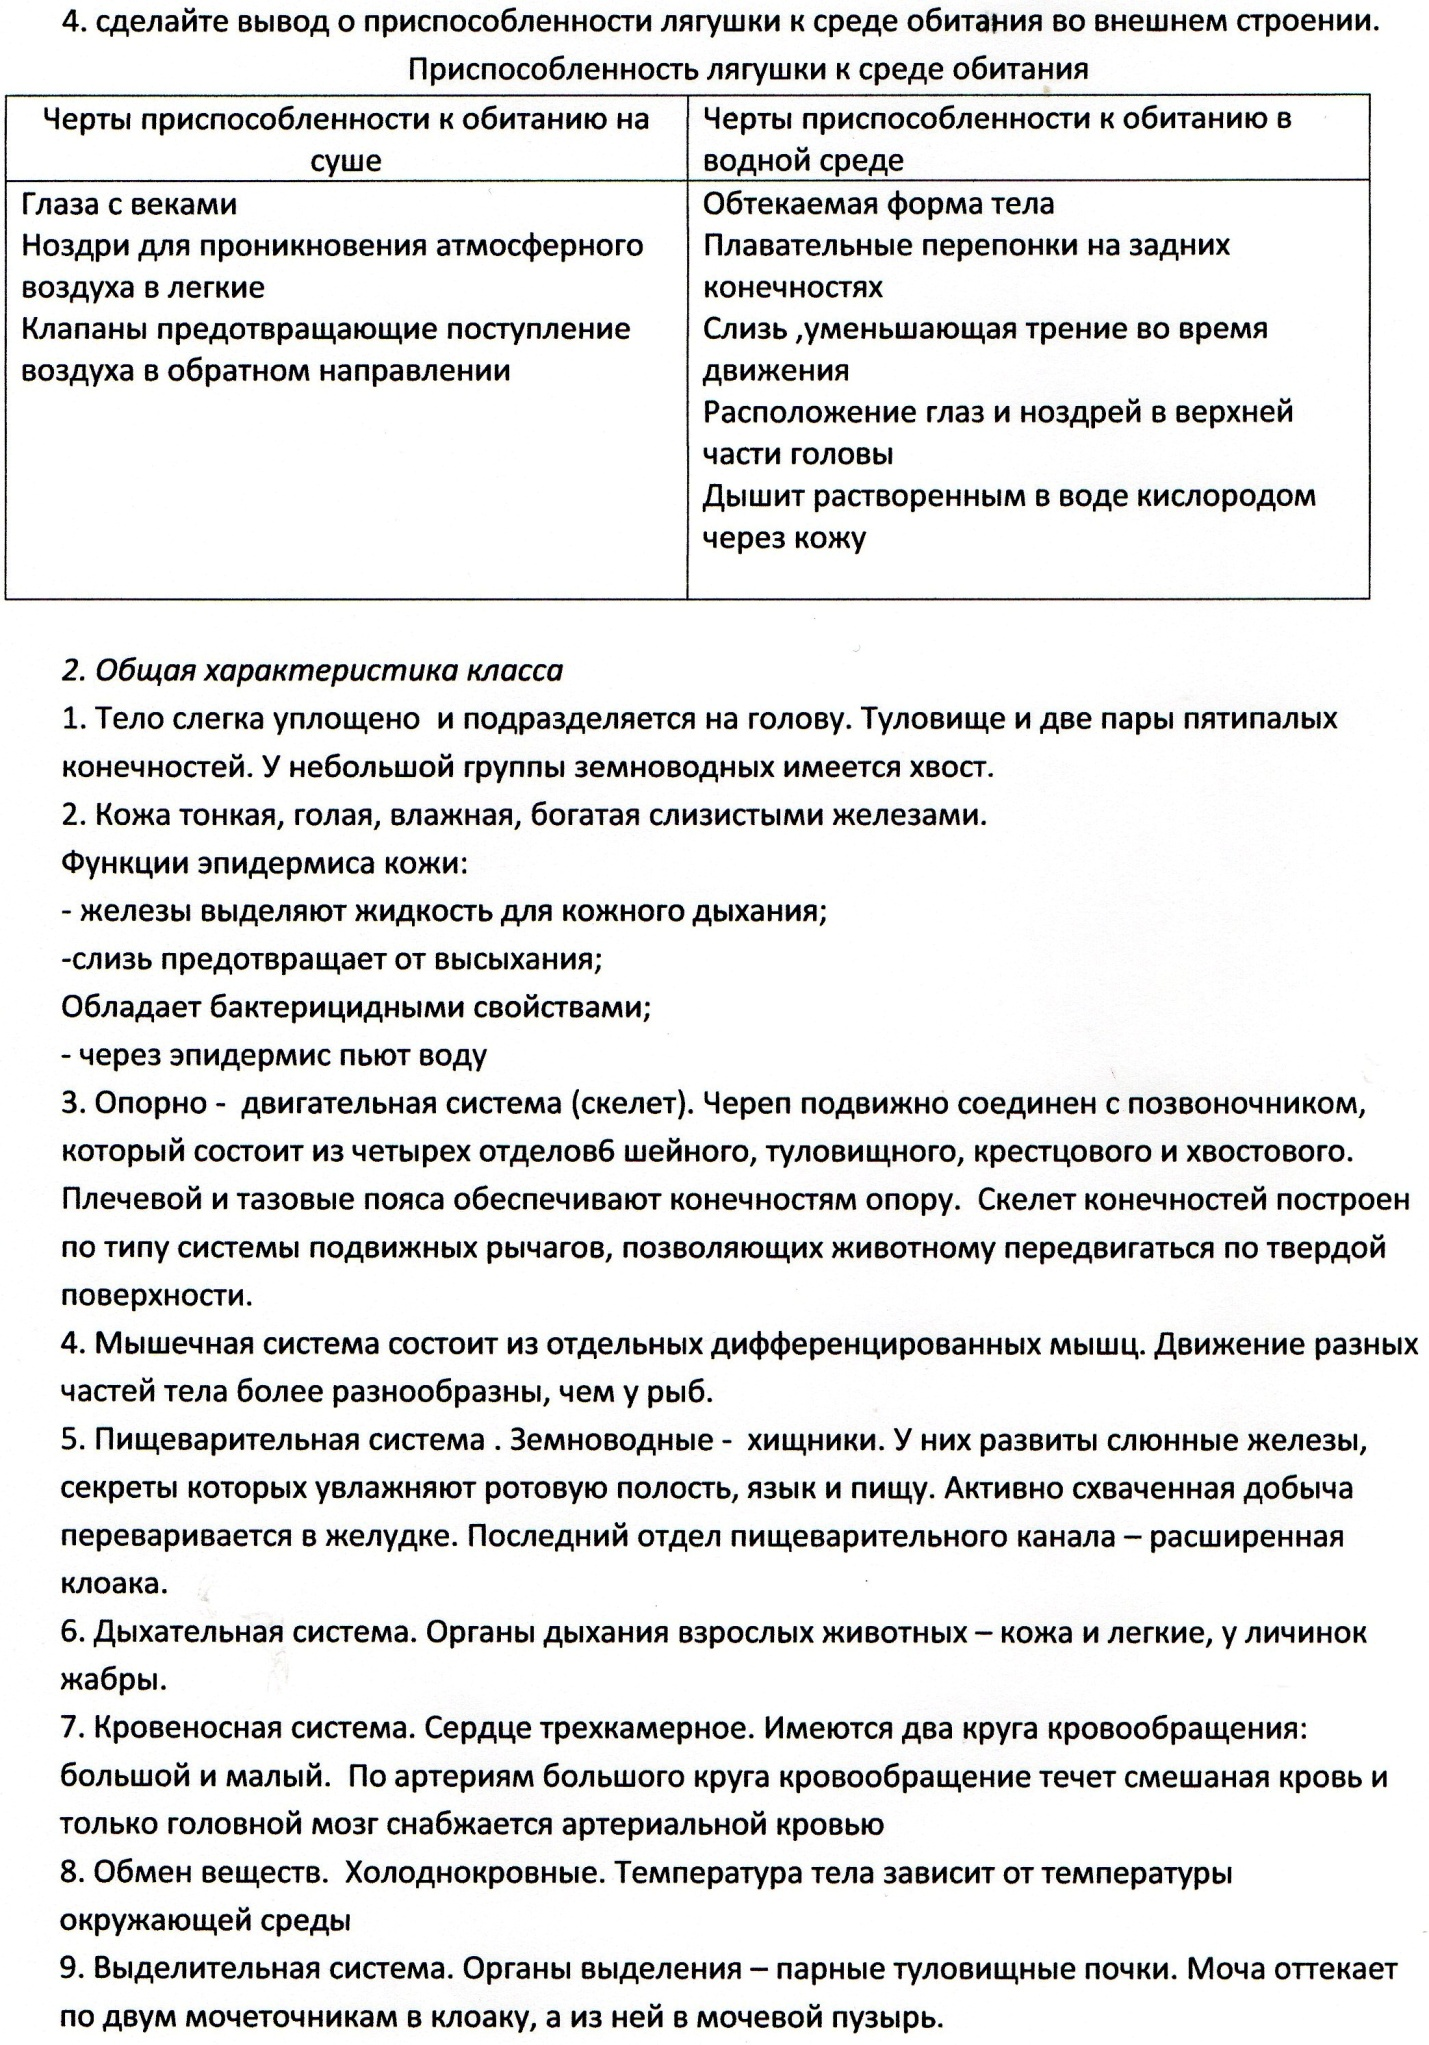 C:\Users\Лена\Pictures\img044.jpg